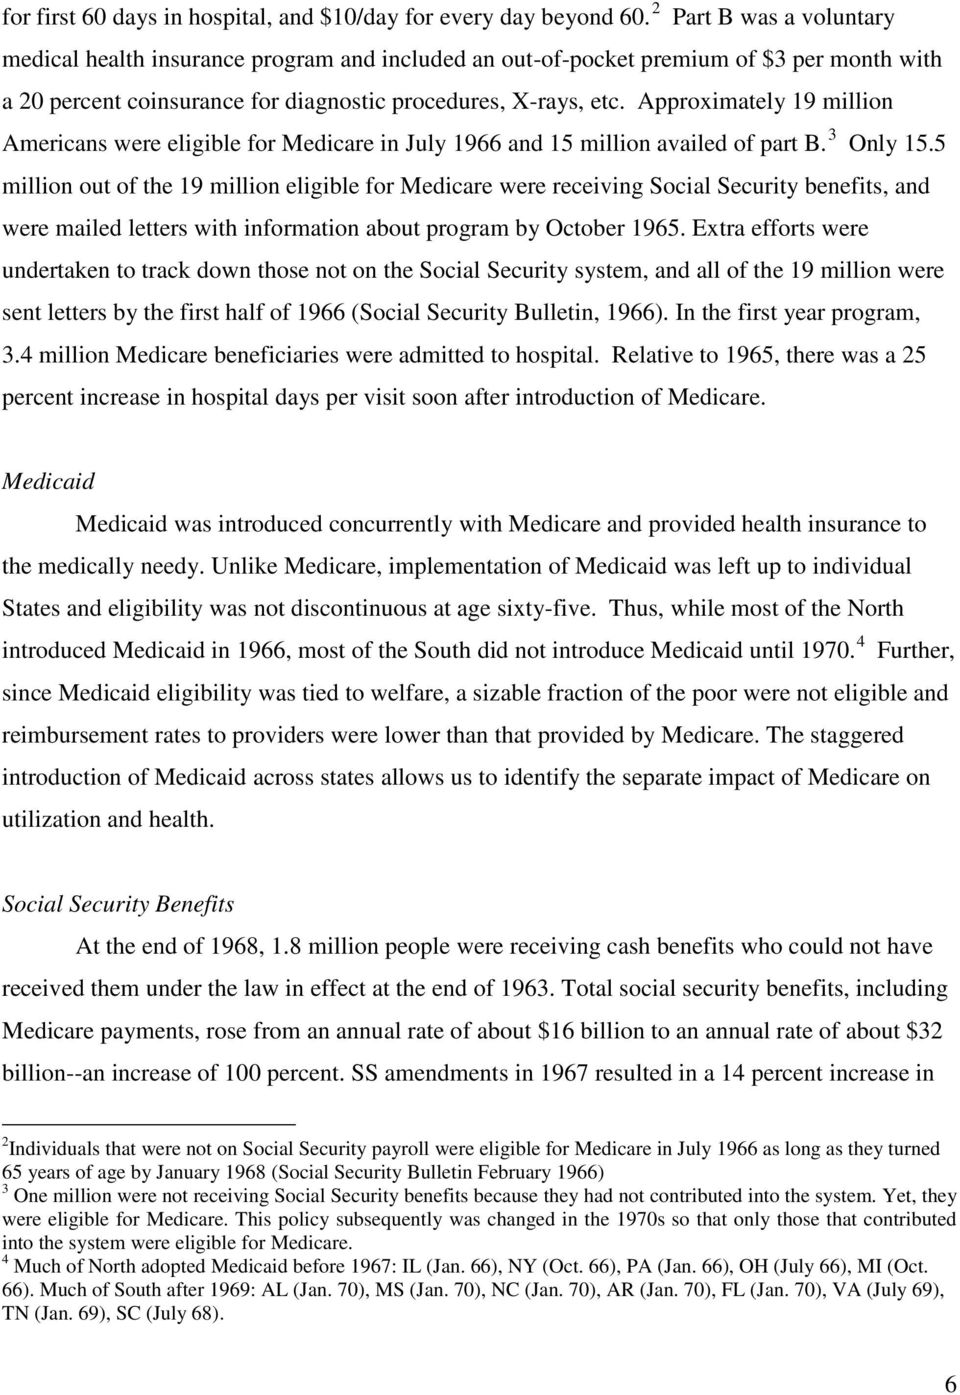 Approximately 19 million Americans were eligible for Medicare in July 1966 and 15 million availed of part B. 3 Only 15.